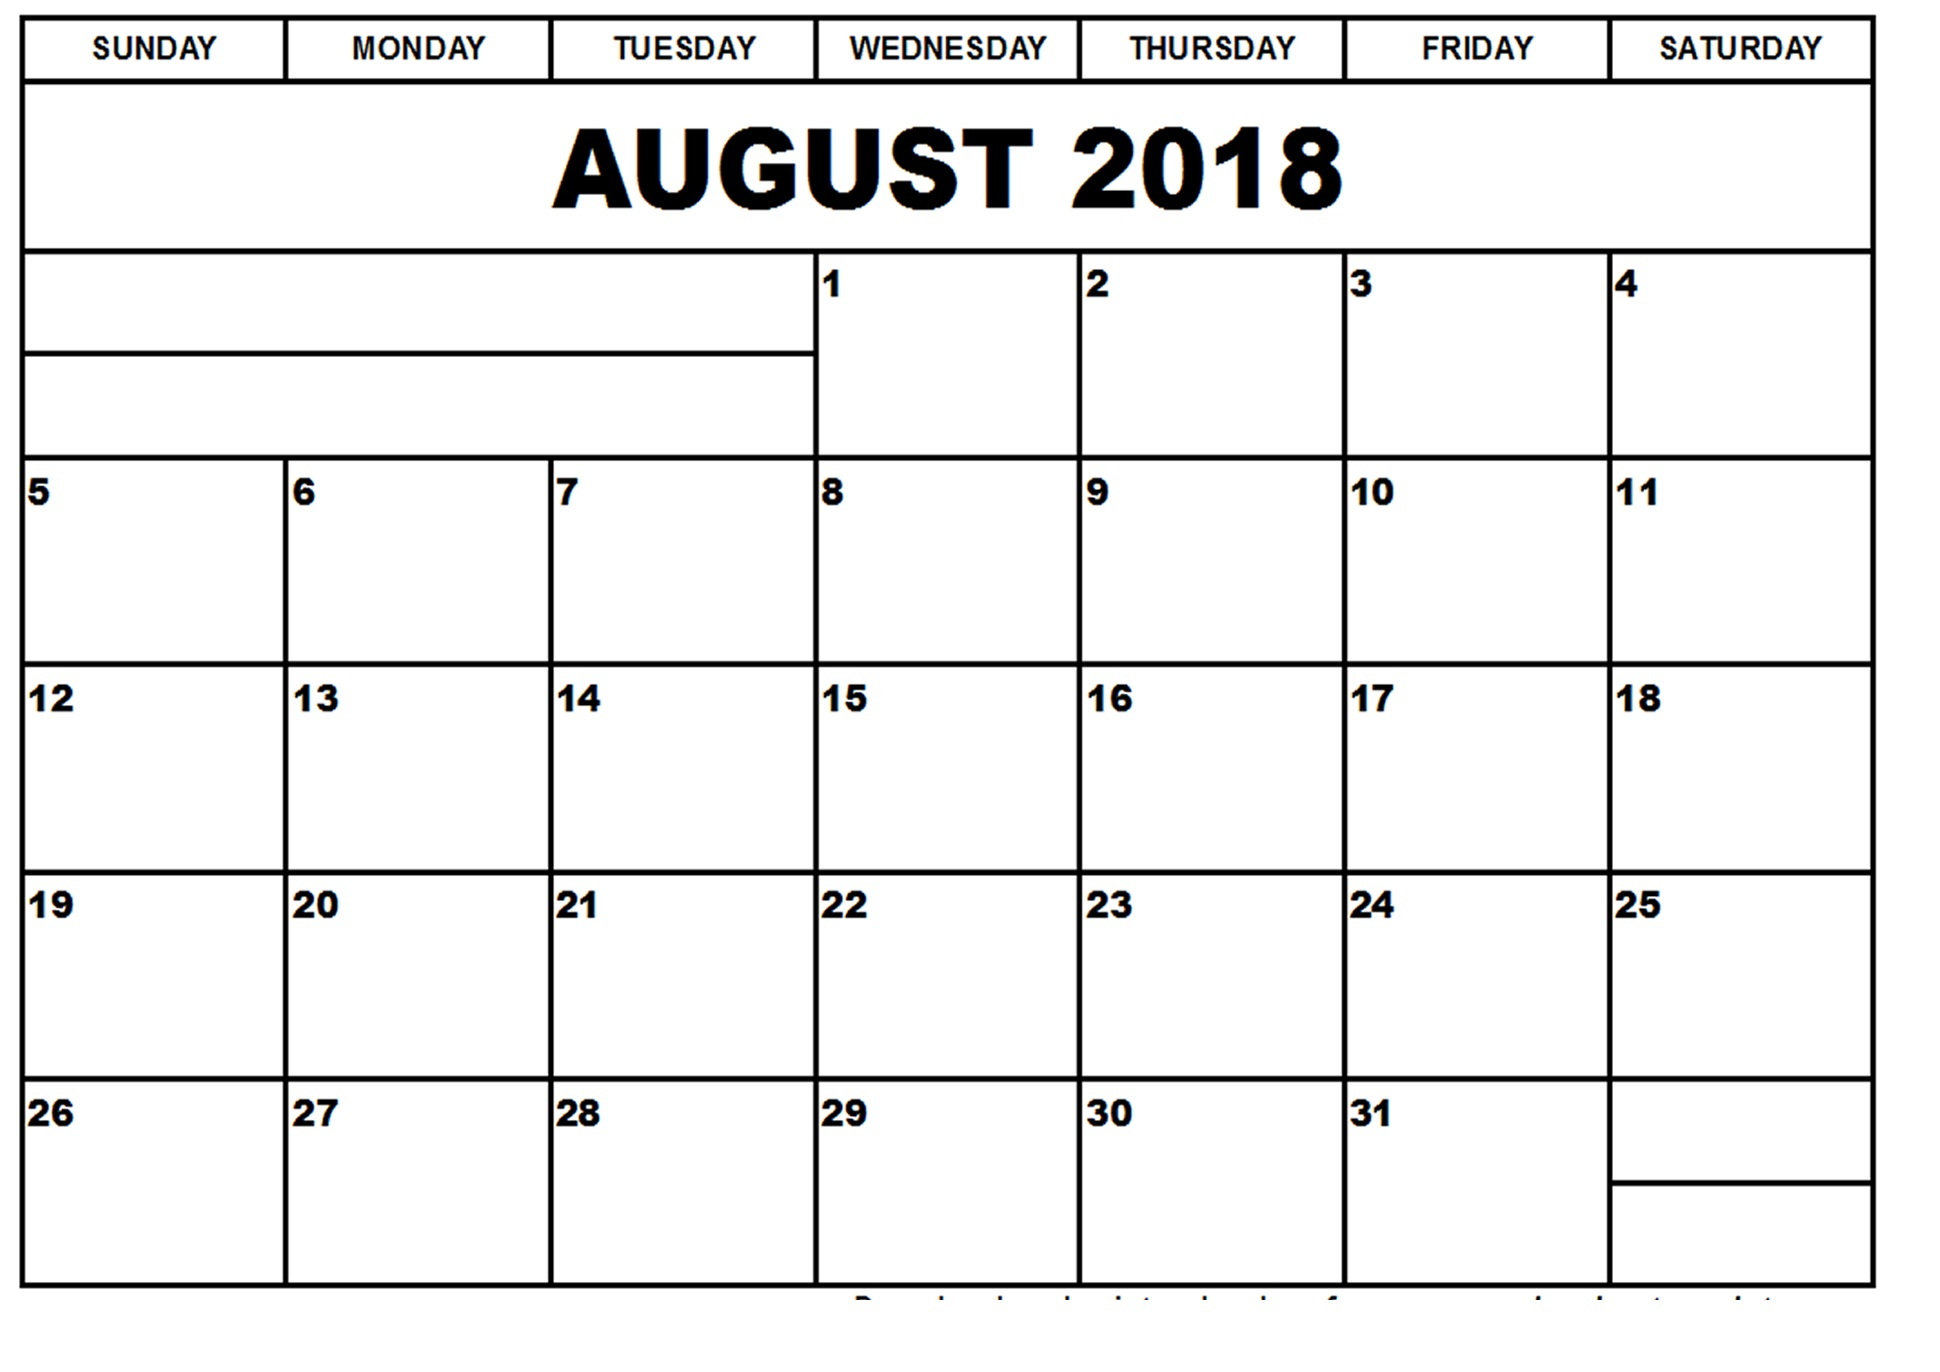 August Calendar 2018 Large Title